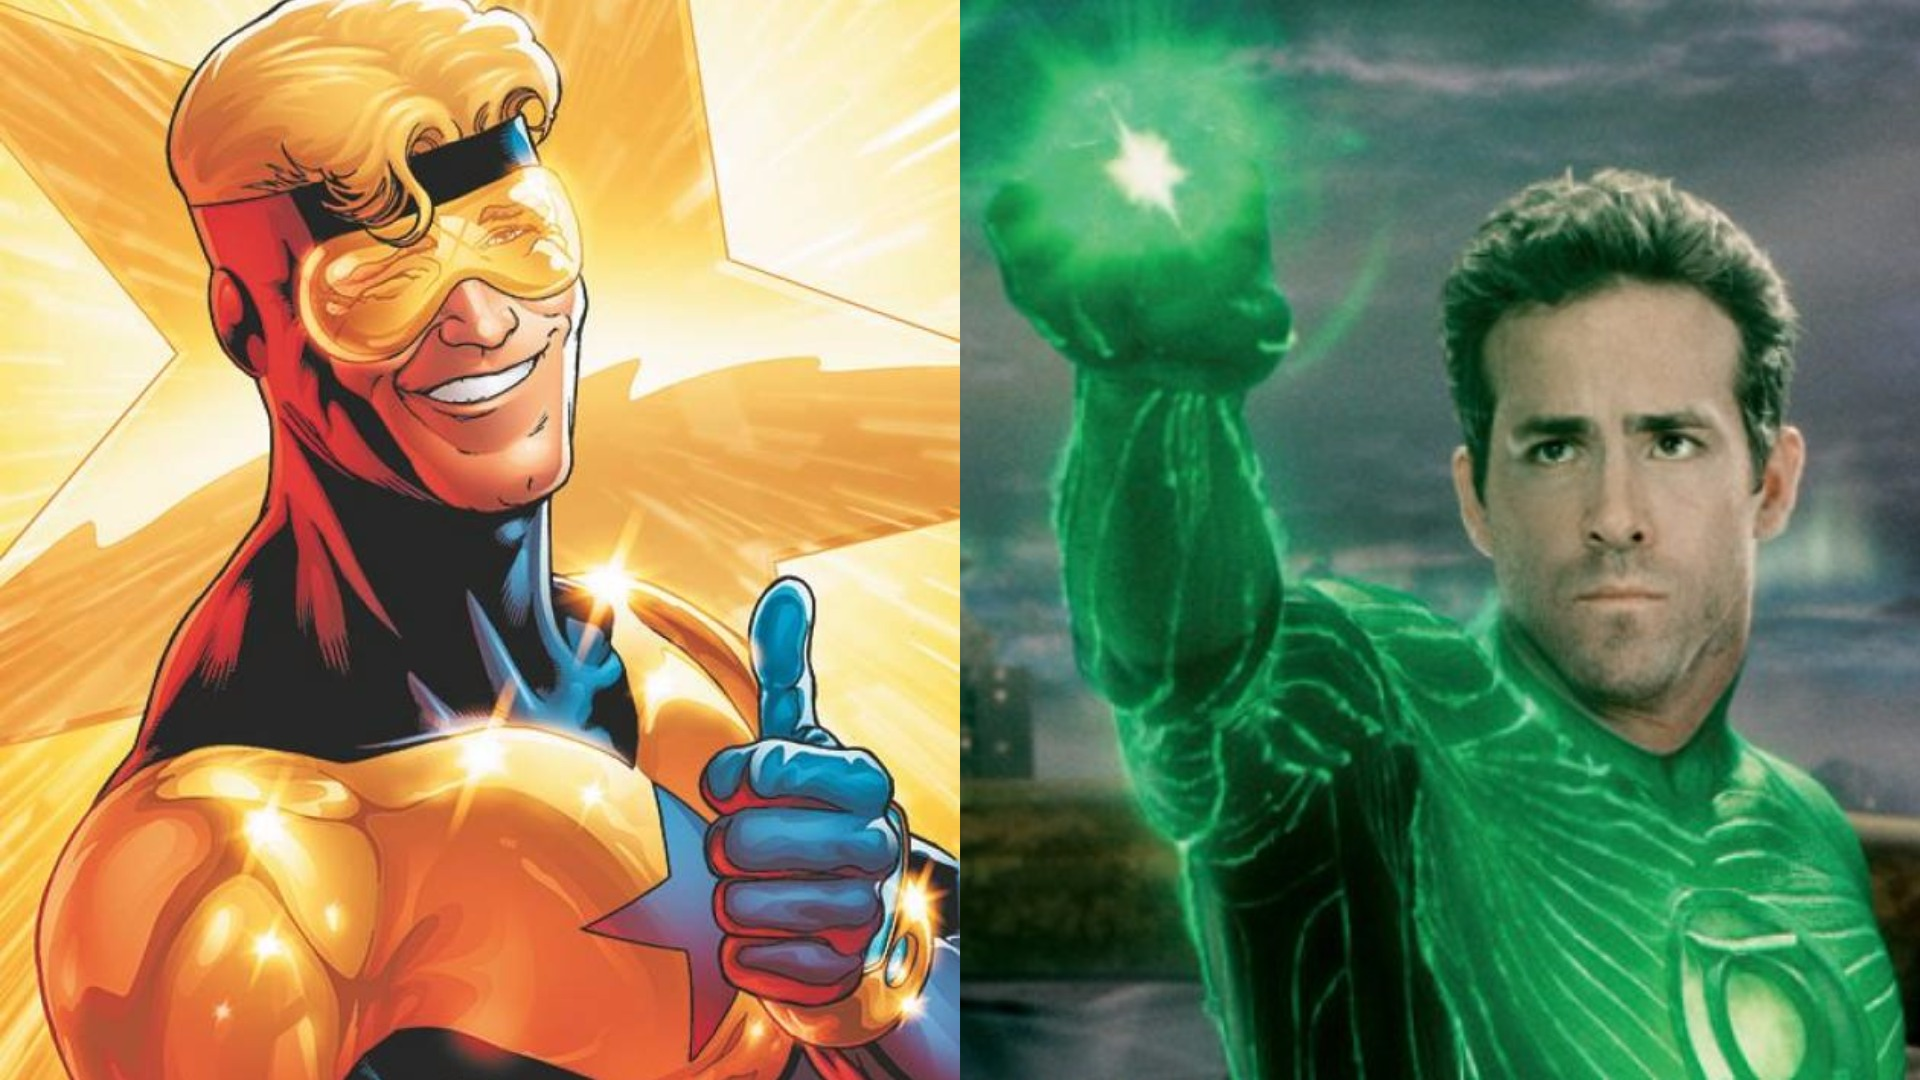 Booster Gold Wallpaper 74 images in Collection Page 1 1920x1080